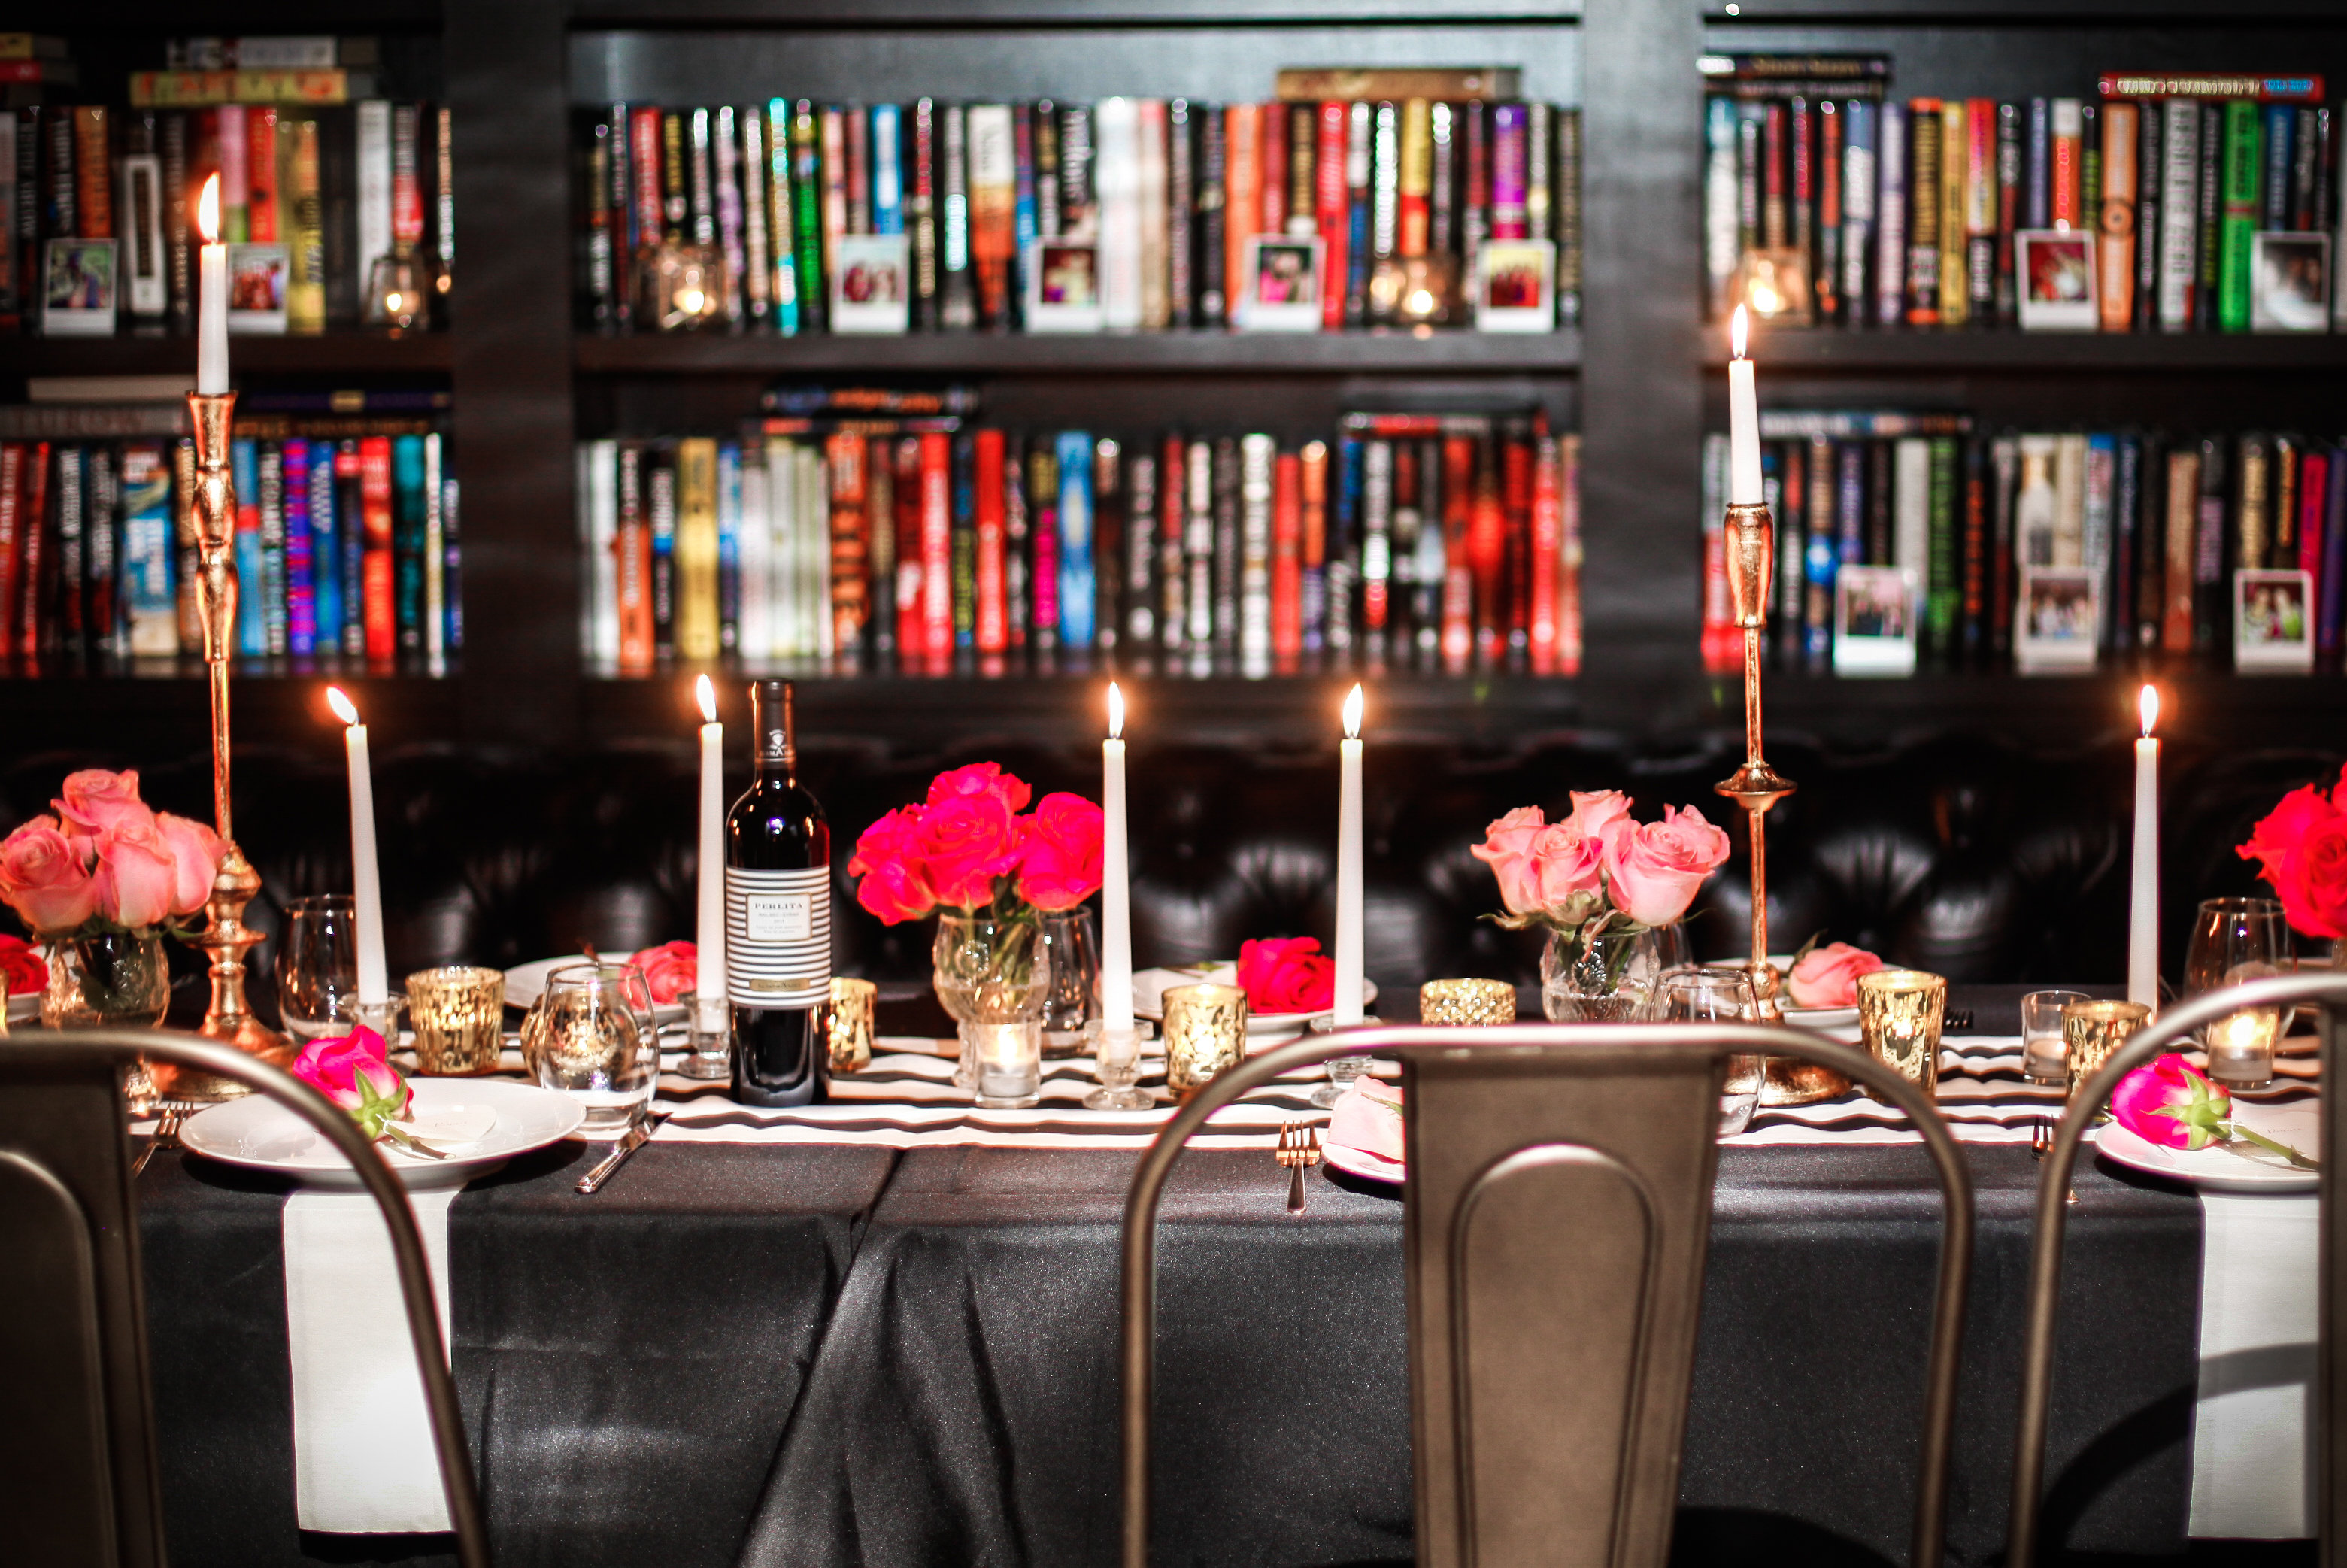 Parisian Bachelorette Party Dinner captured by Ruby Yeh Photography